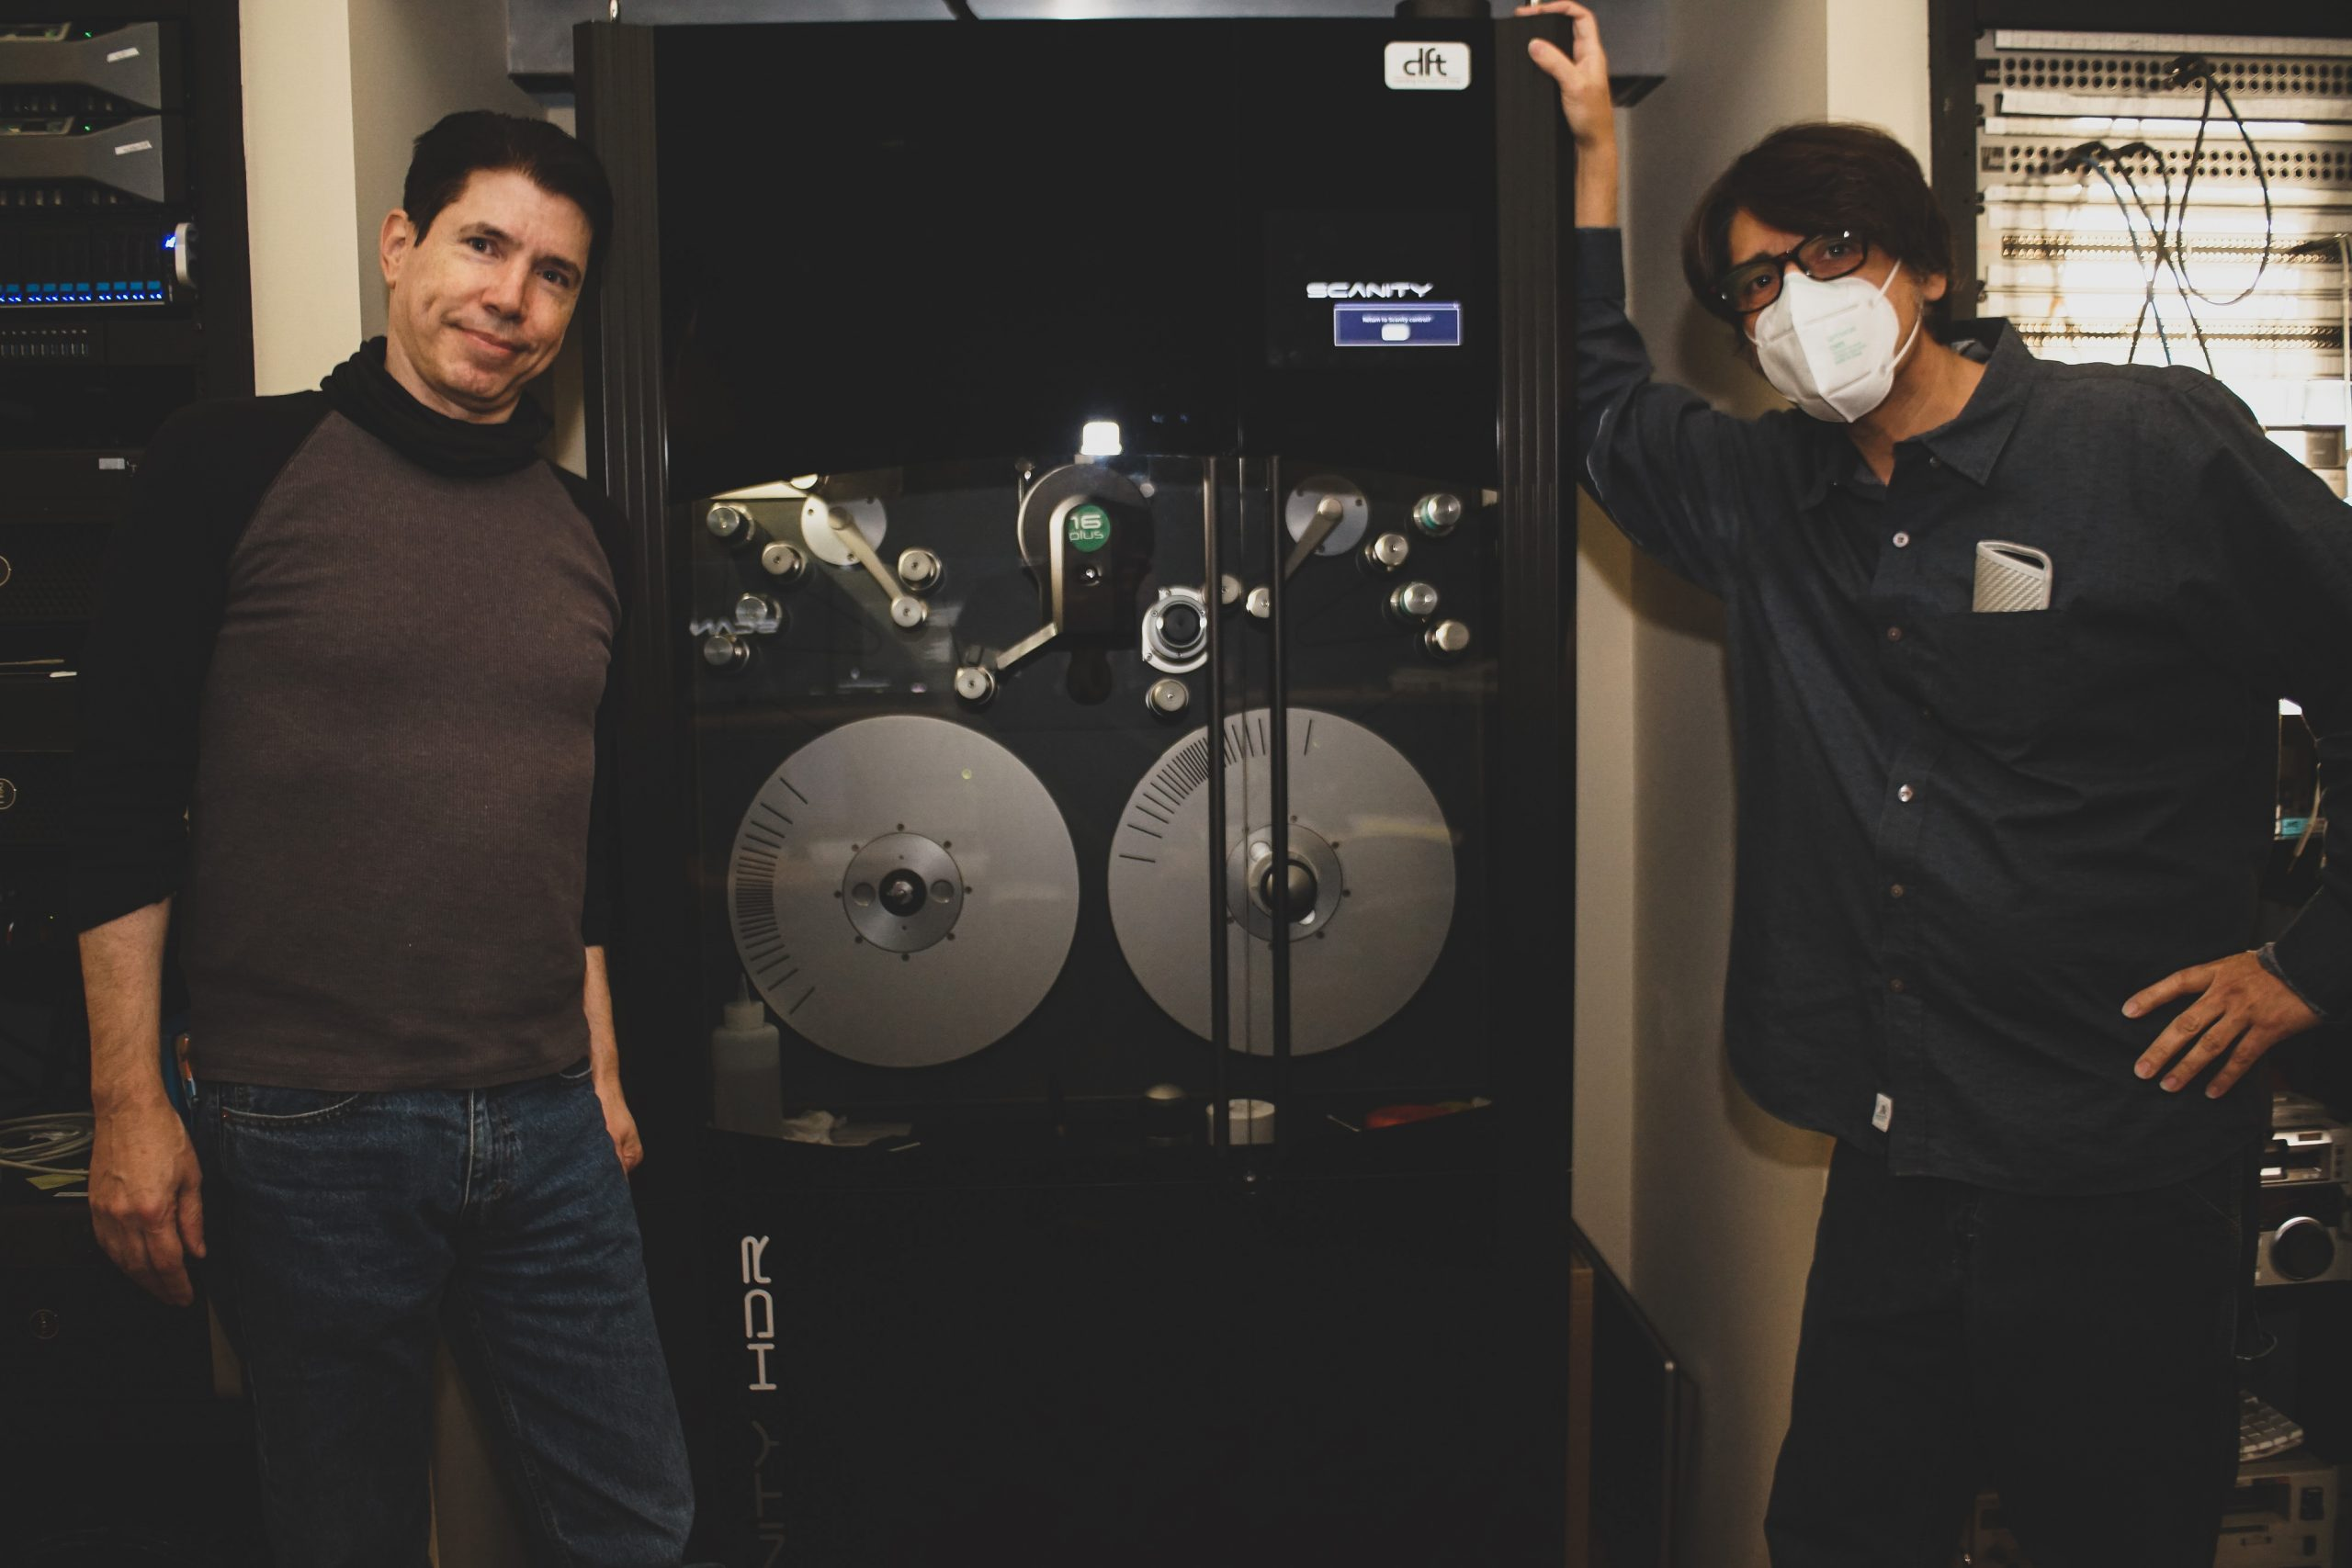 Spectra chooses Scanity for high-end film scanning projects